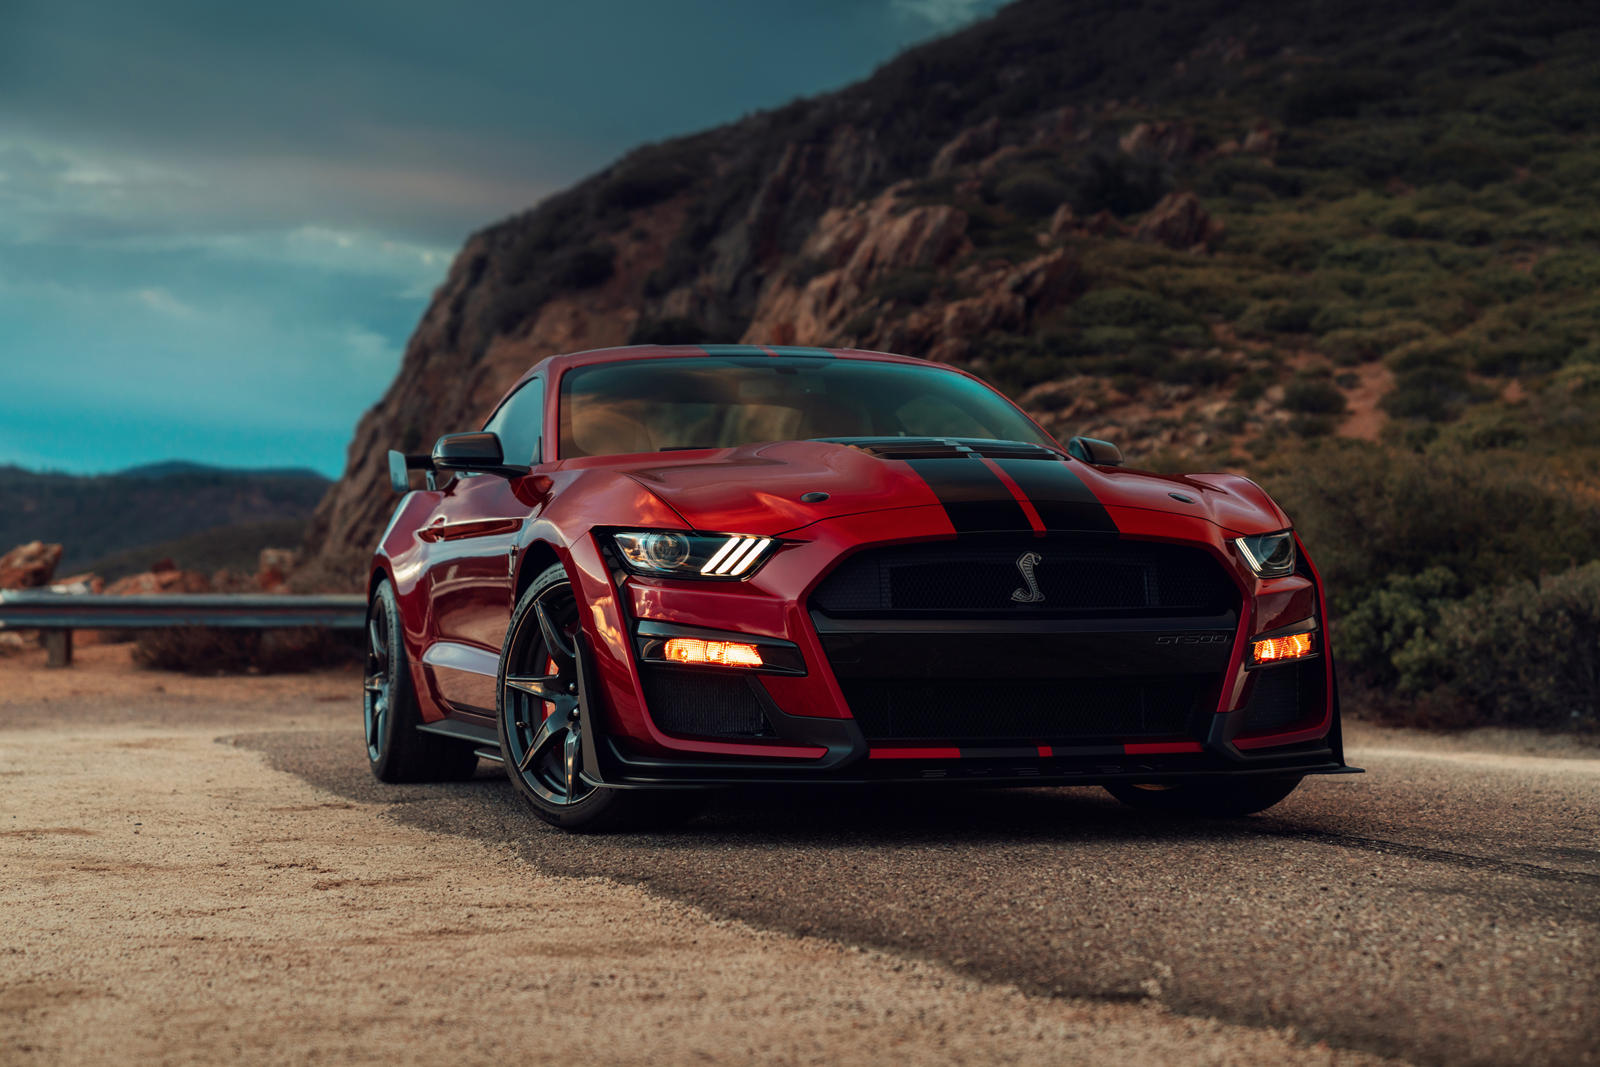 2020 Ford Mustang Shelby GT500: Review, Trims, Specs, Price, New Interior Features, Exterior ...